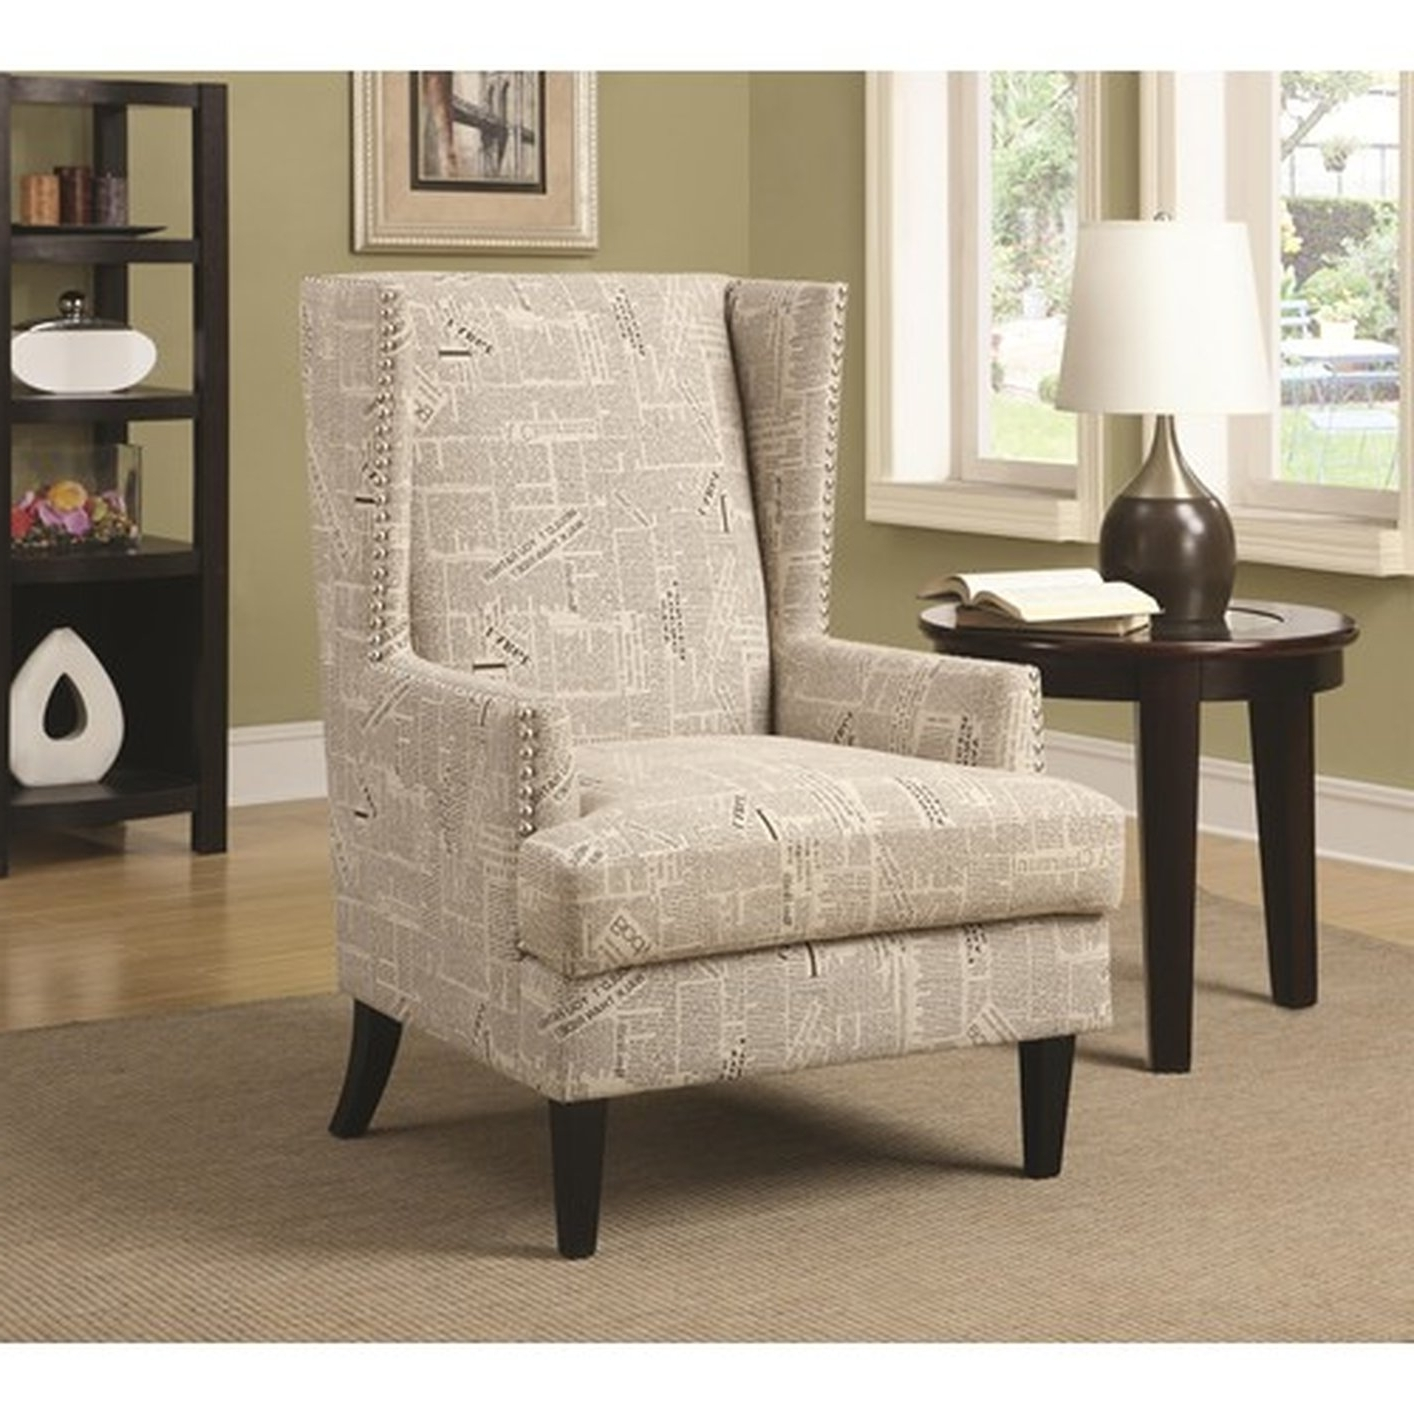 Most Recently Released Accent Sofa Chair – House Decorations Within Accent Sofa Chairs (View 6 of 20)